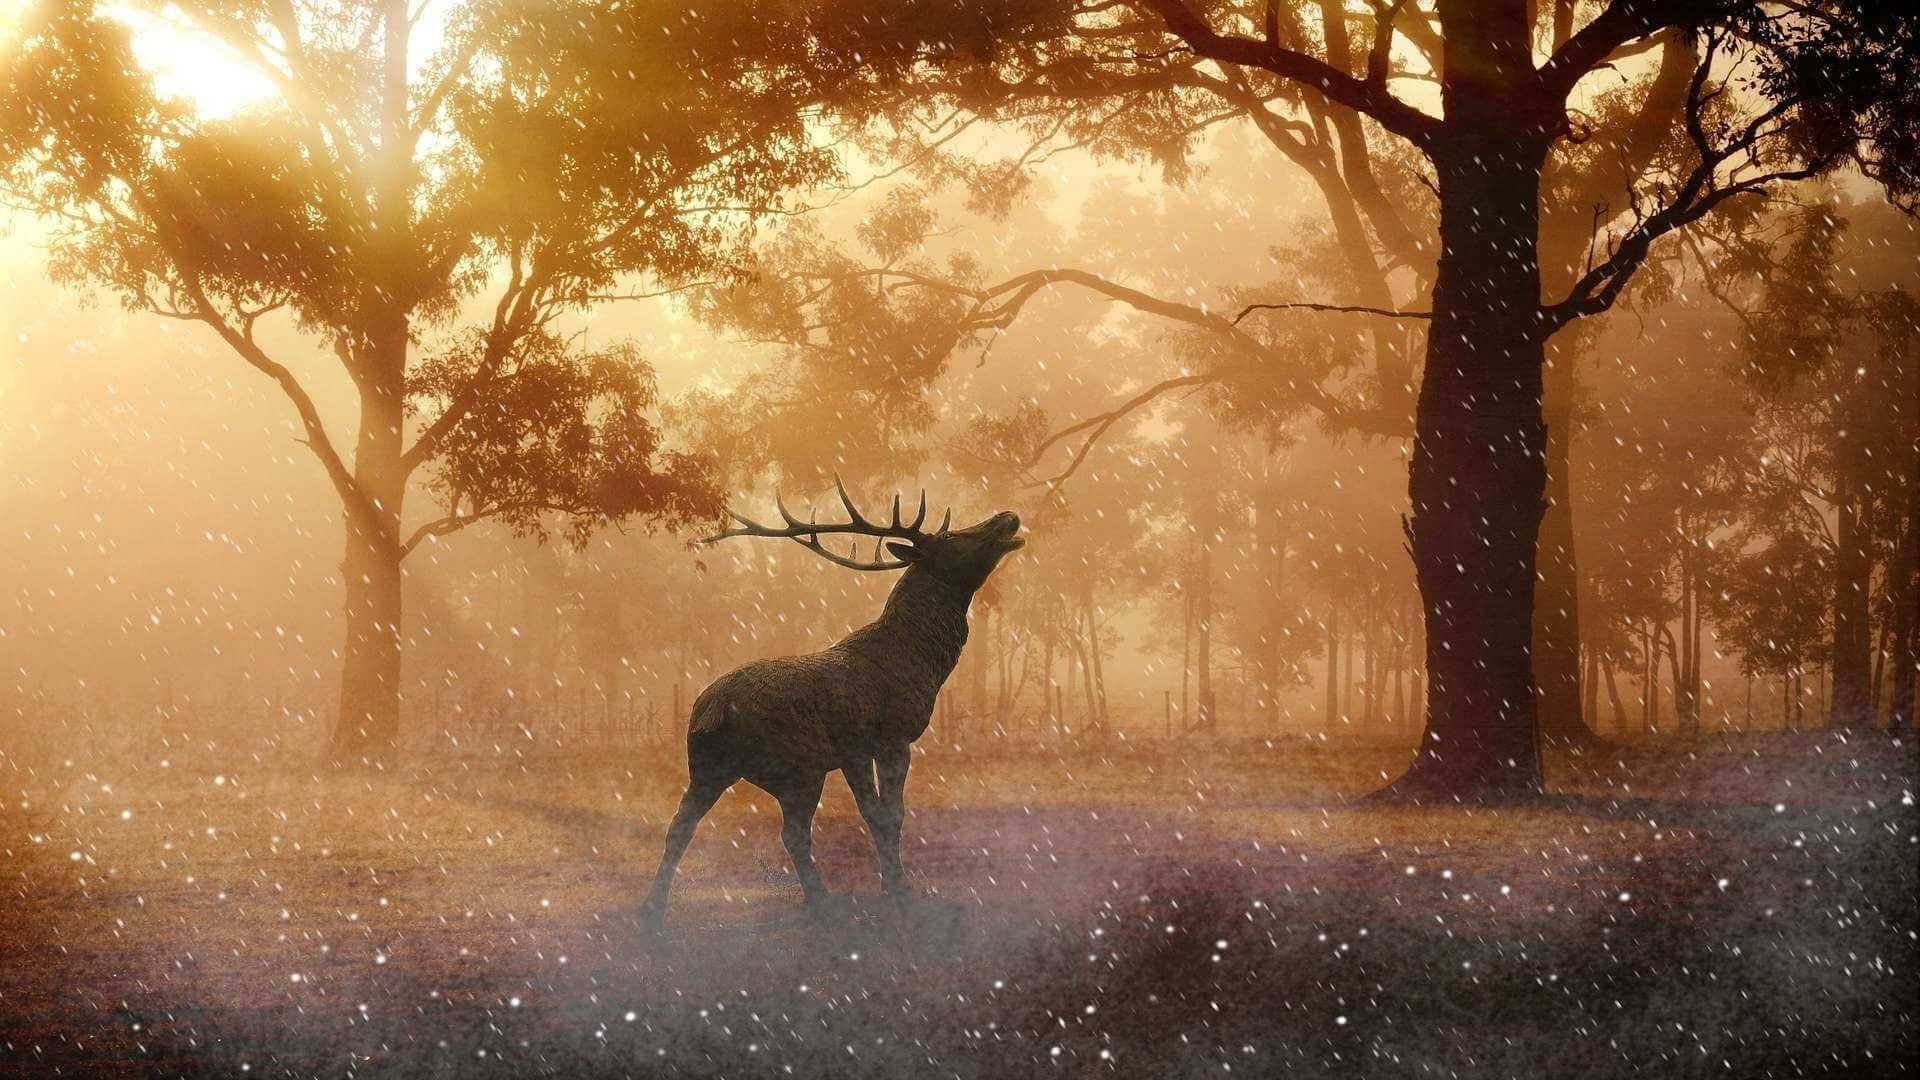 Deer In The Forest wallpaper photo hd